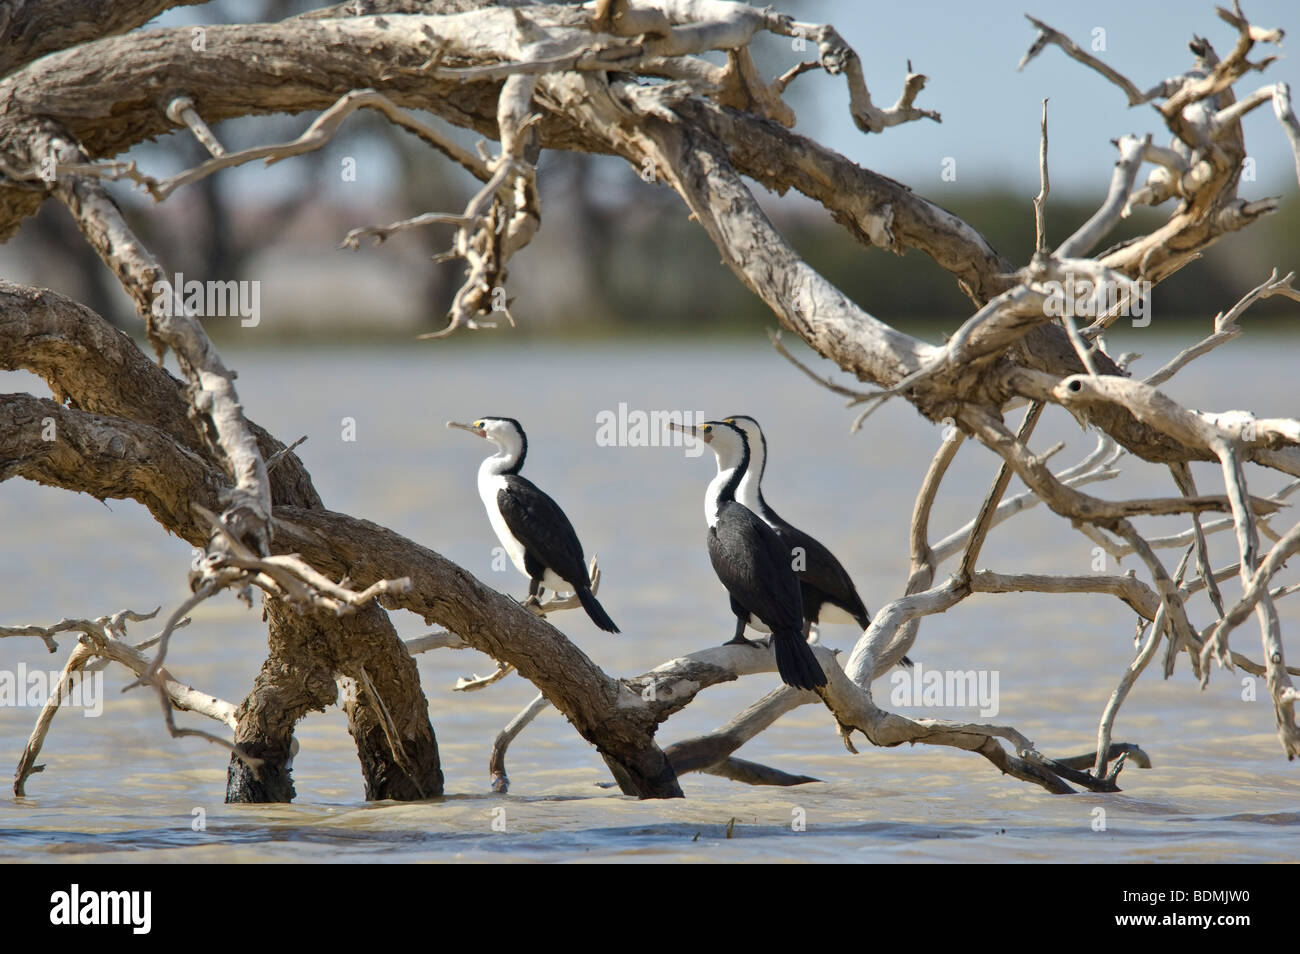 Pied Cormorants, Coongie Lake, South Australia - Stock Image